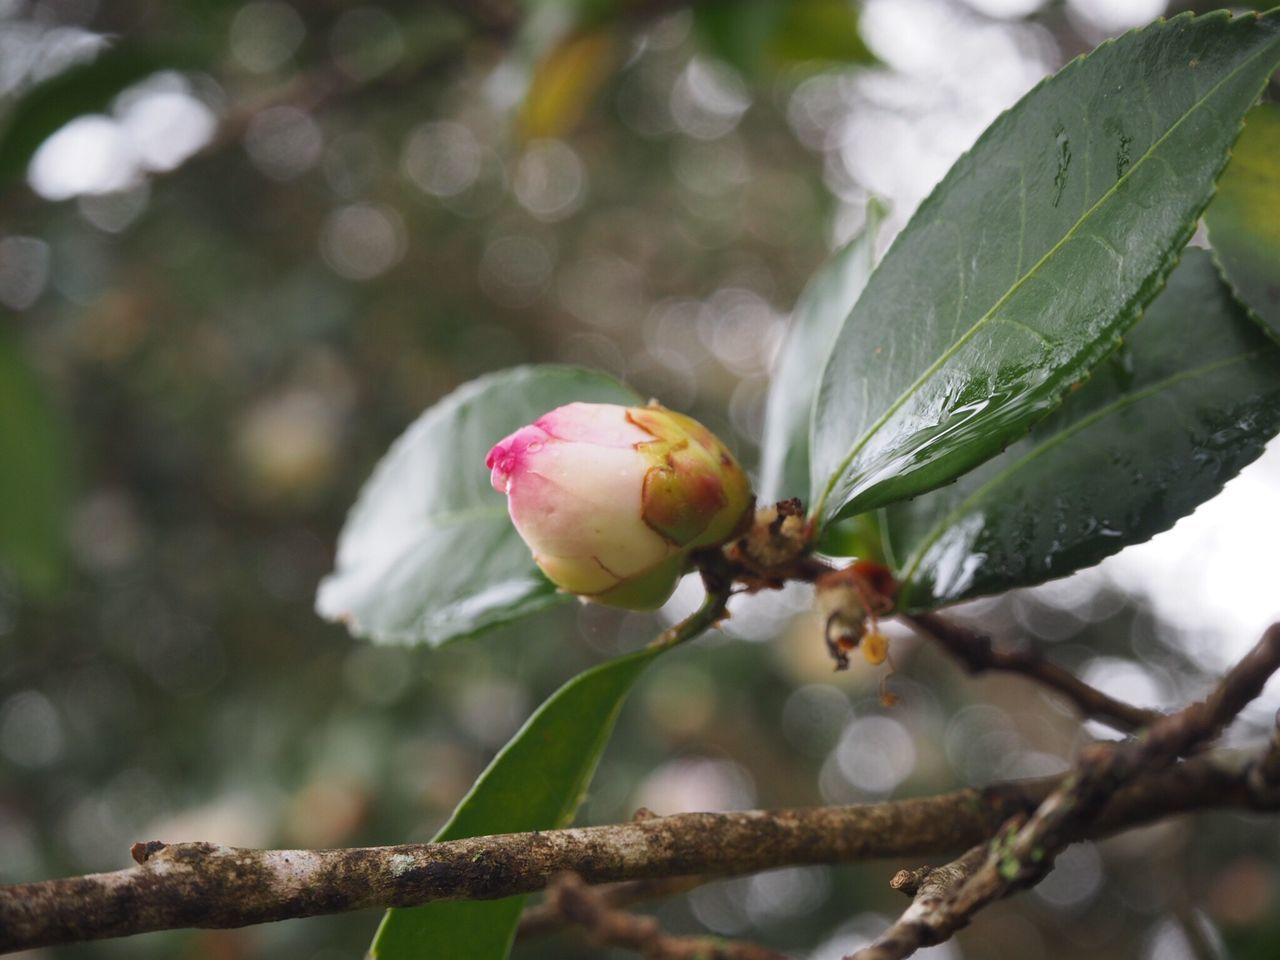 Budding camellias Flower Nature Beauty In Nature Close-up Growth No People Freshness Fragility Plant Focus On Foreground Green Color Petal Leaf Flower Head Camellia Freshness Bud